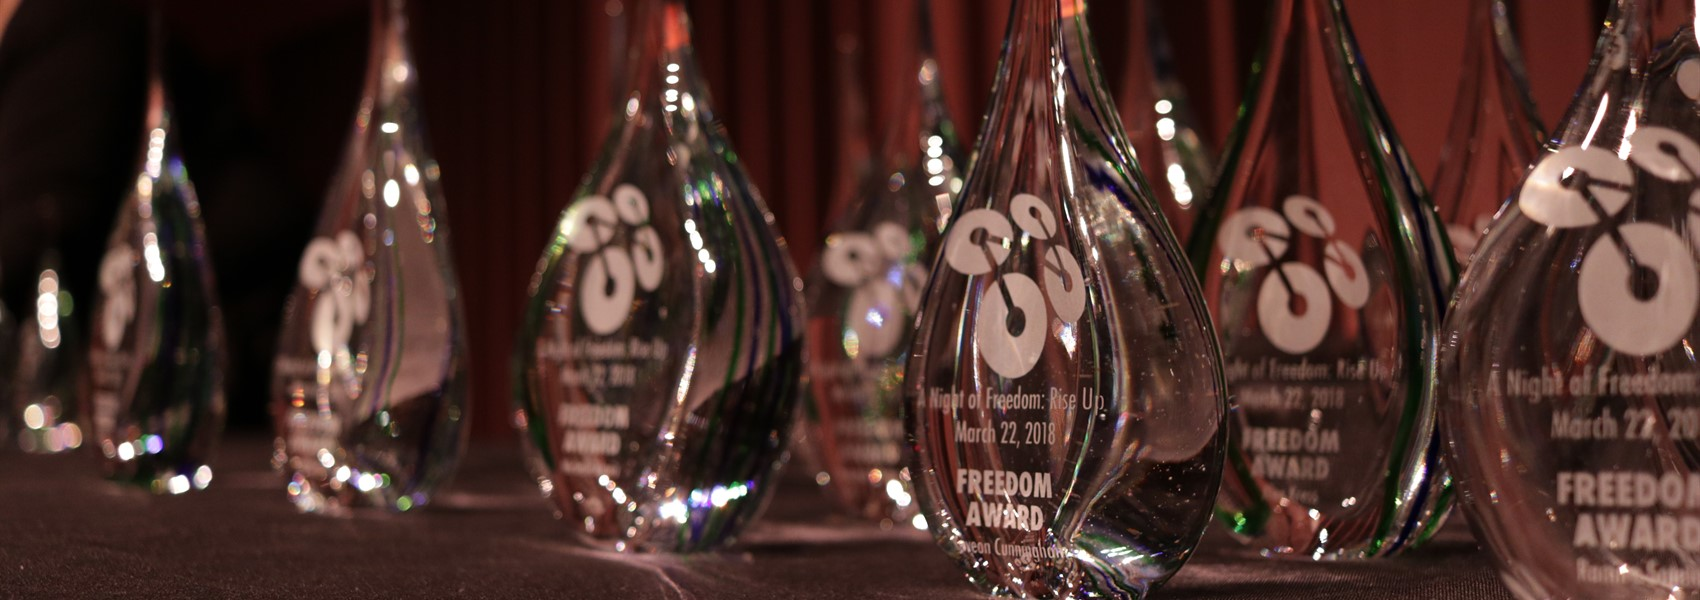 Freedom Awards from Neusole Glassworks